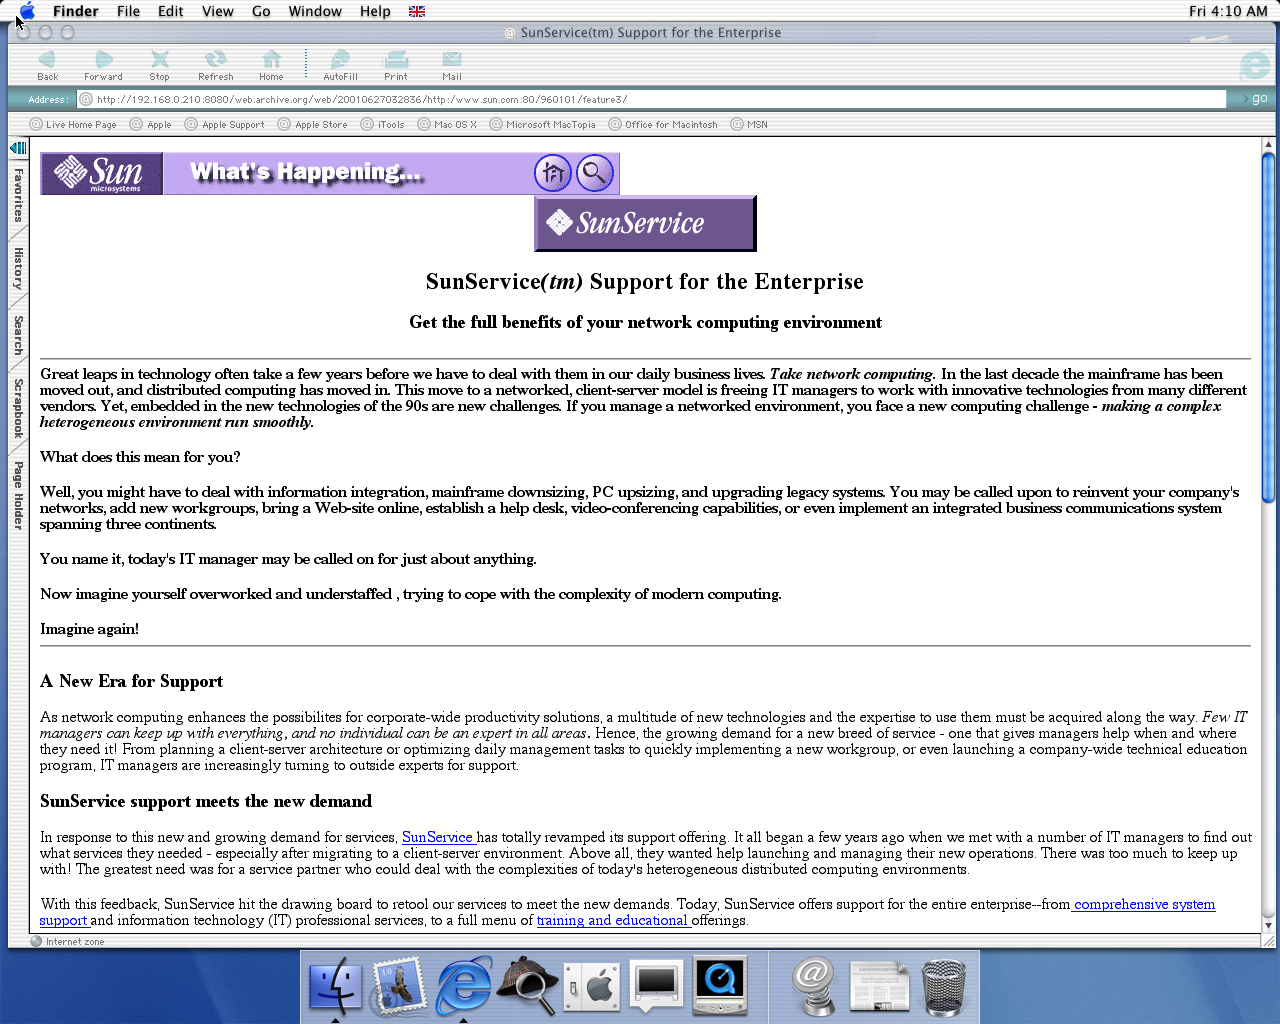 OS X 10.0 PPC with Microsoft Internet Explorer 5.1 for Mac Preview displaying a page from Sun Microsystems archived at June 27, 2001 at 03:28:36